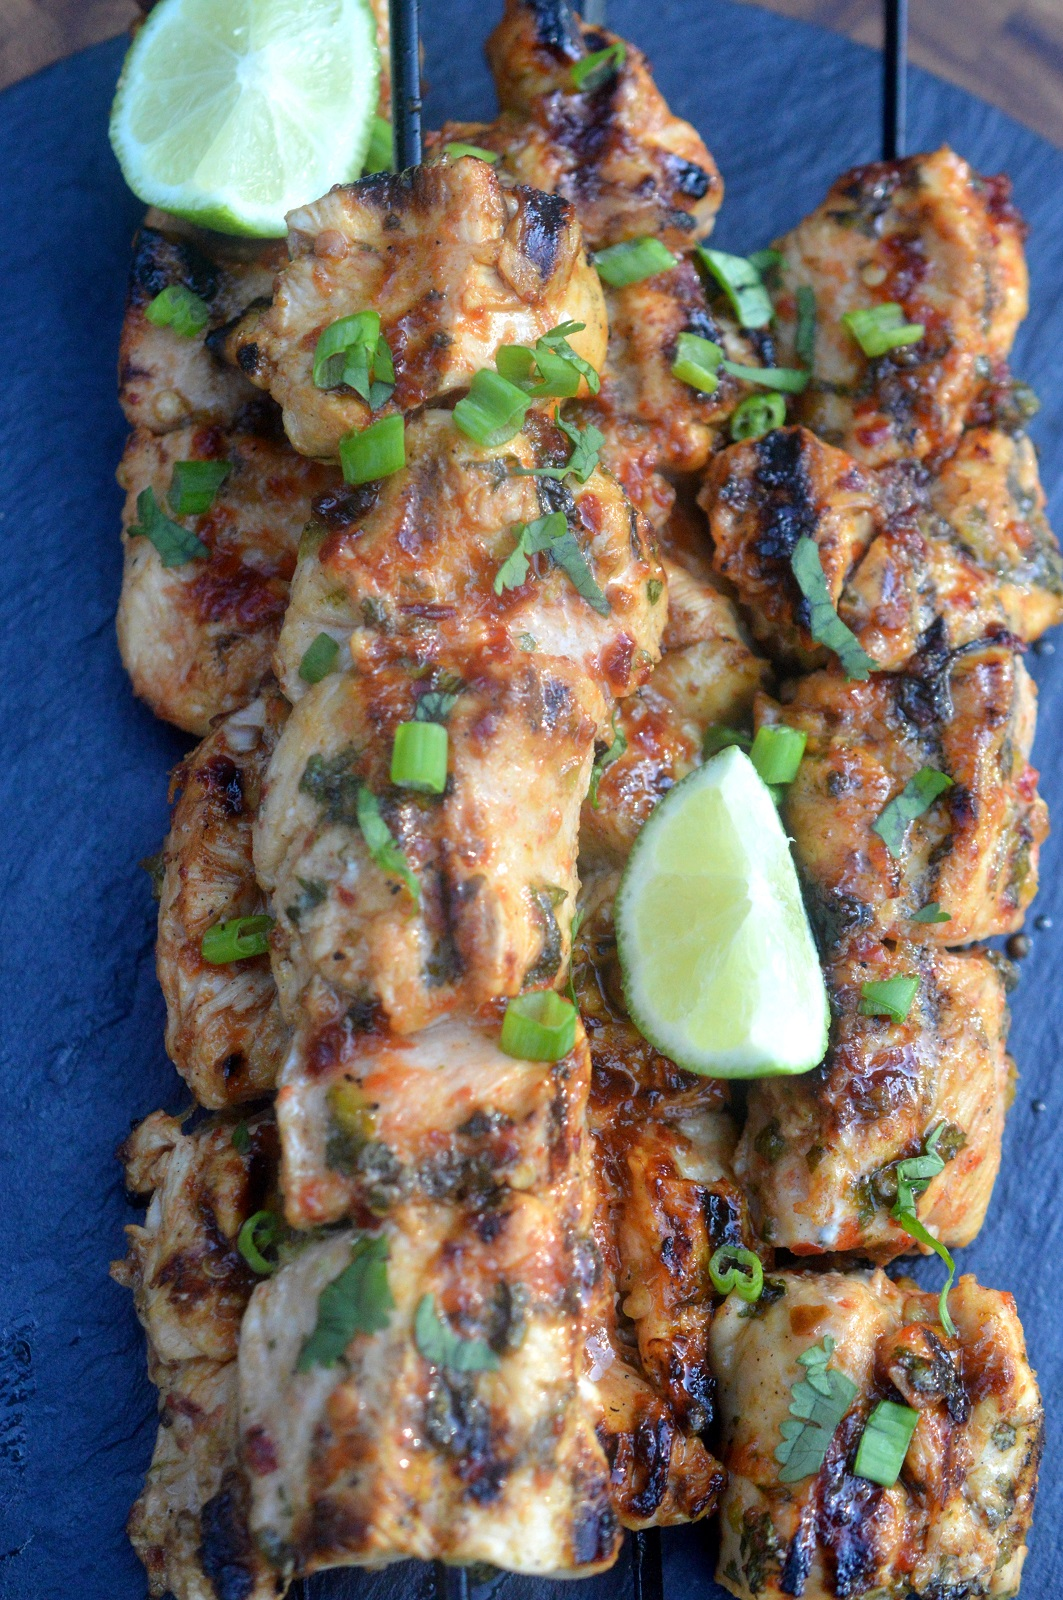 Easy & Delicious Grilled Chili Lime Chicken Skewers